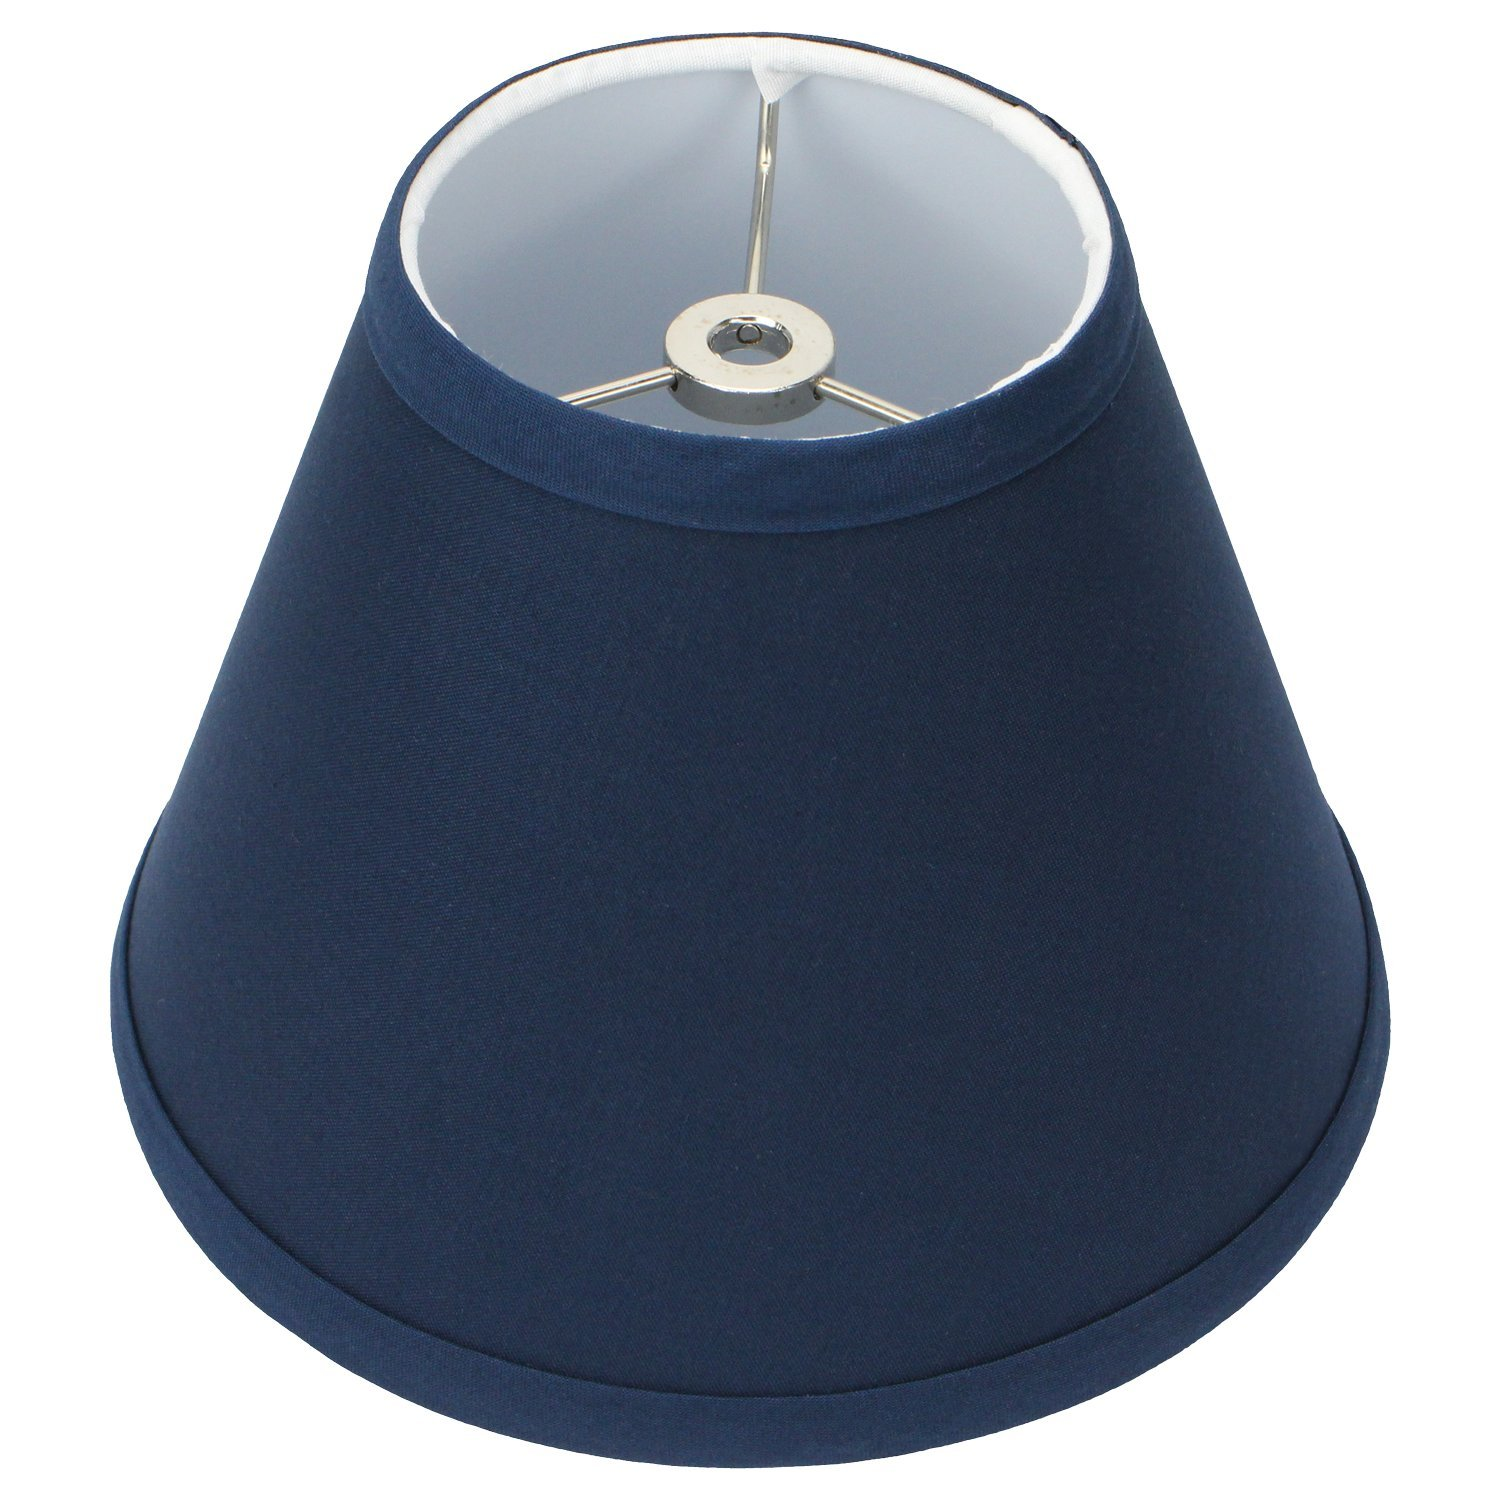 Cheap navy lamp shade find navy lamp shade deals on line at alibaba get quotations fenchelshades lamp shade 4x8x6 navy blue linen fabric this item does not clip aloadofball